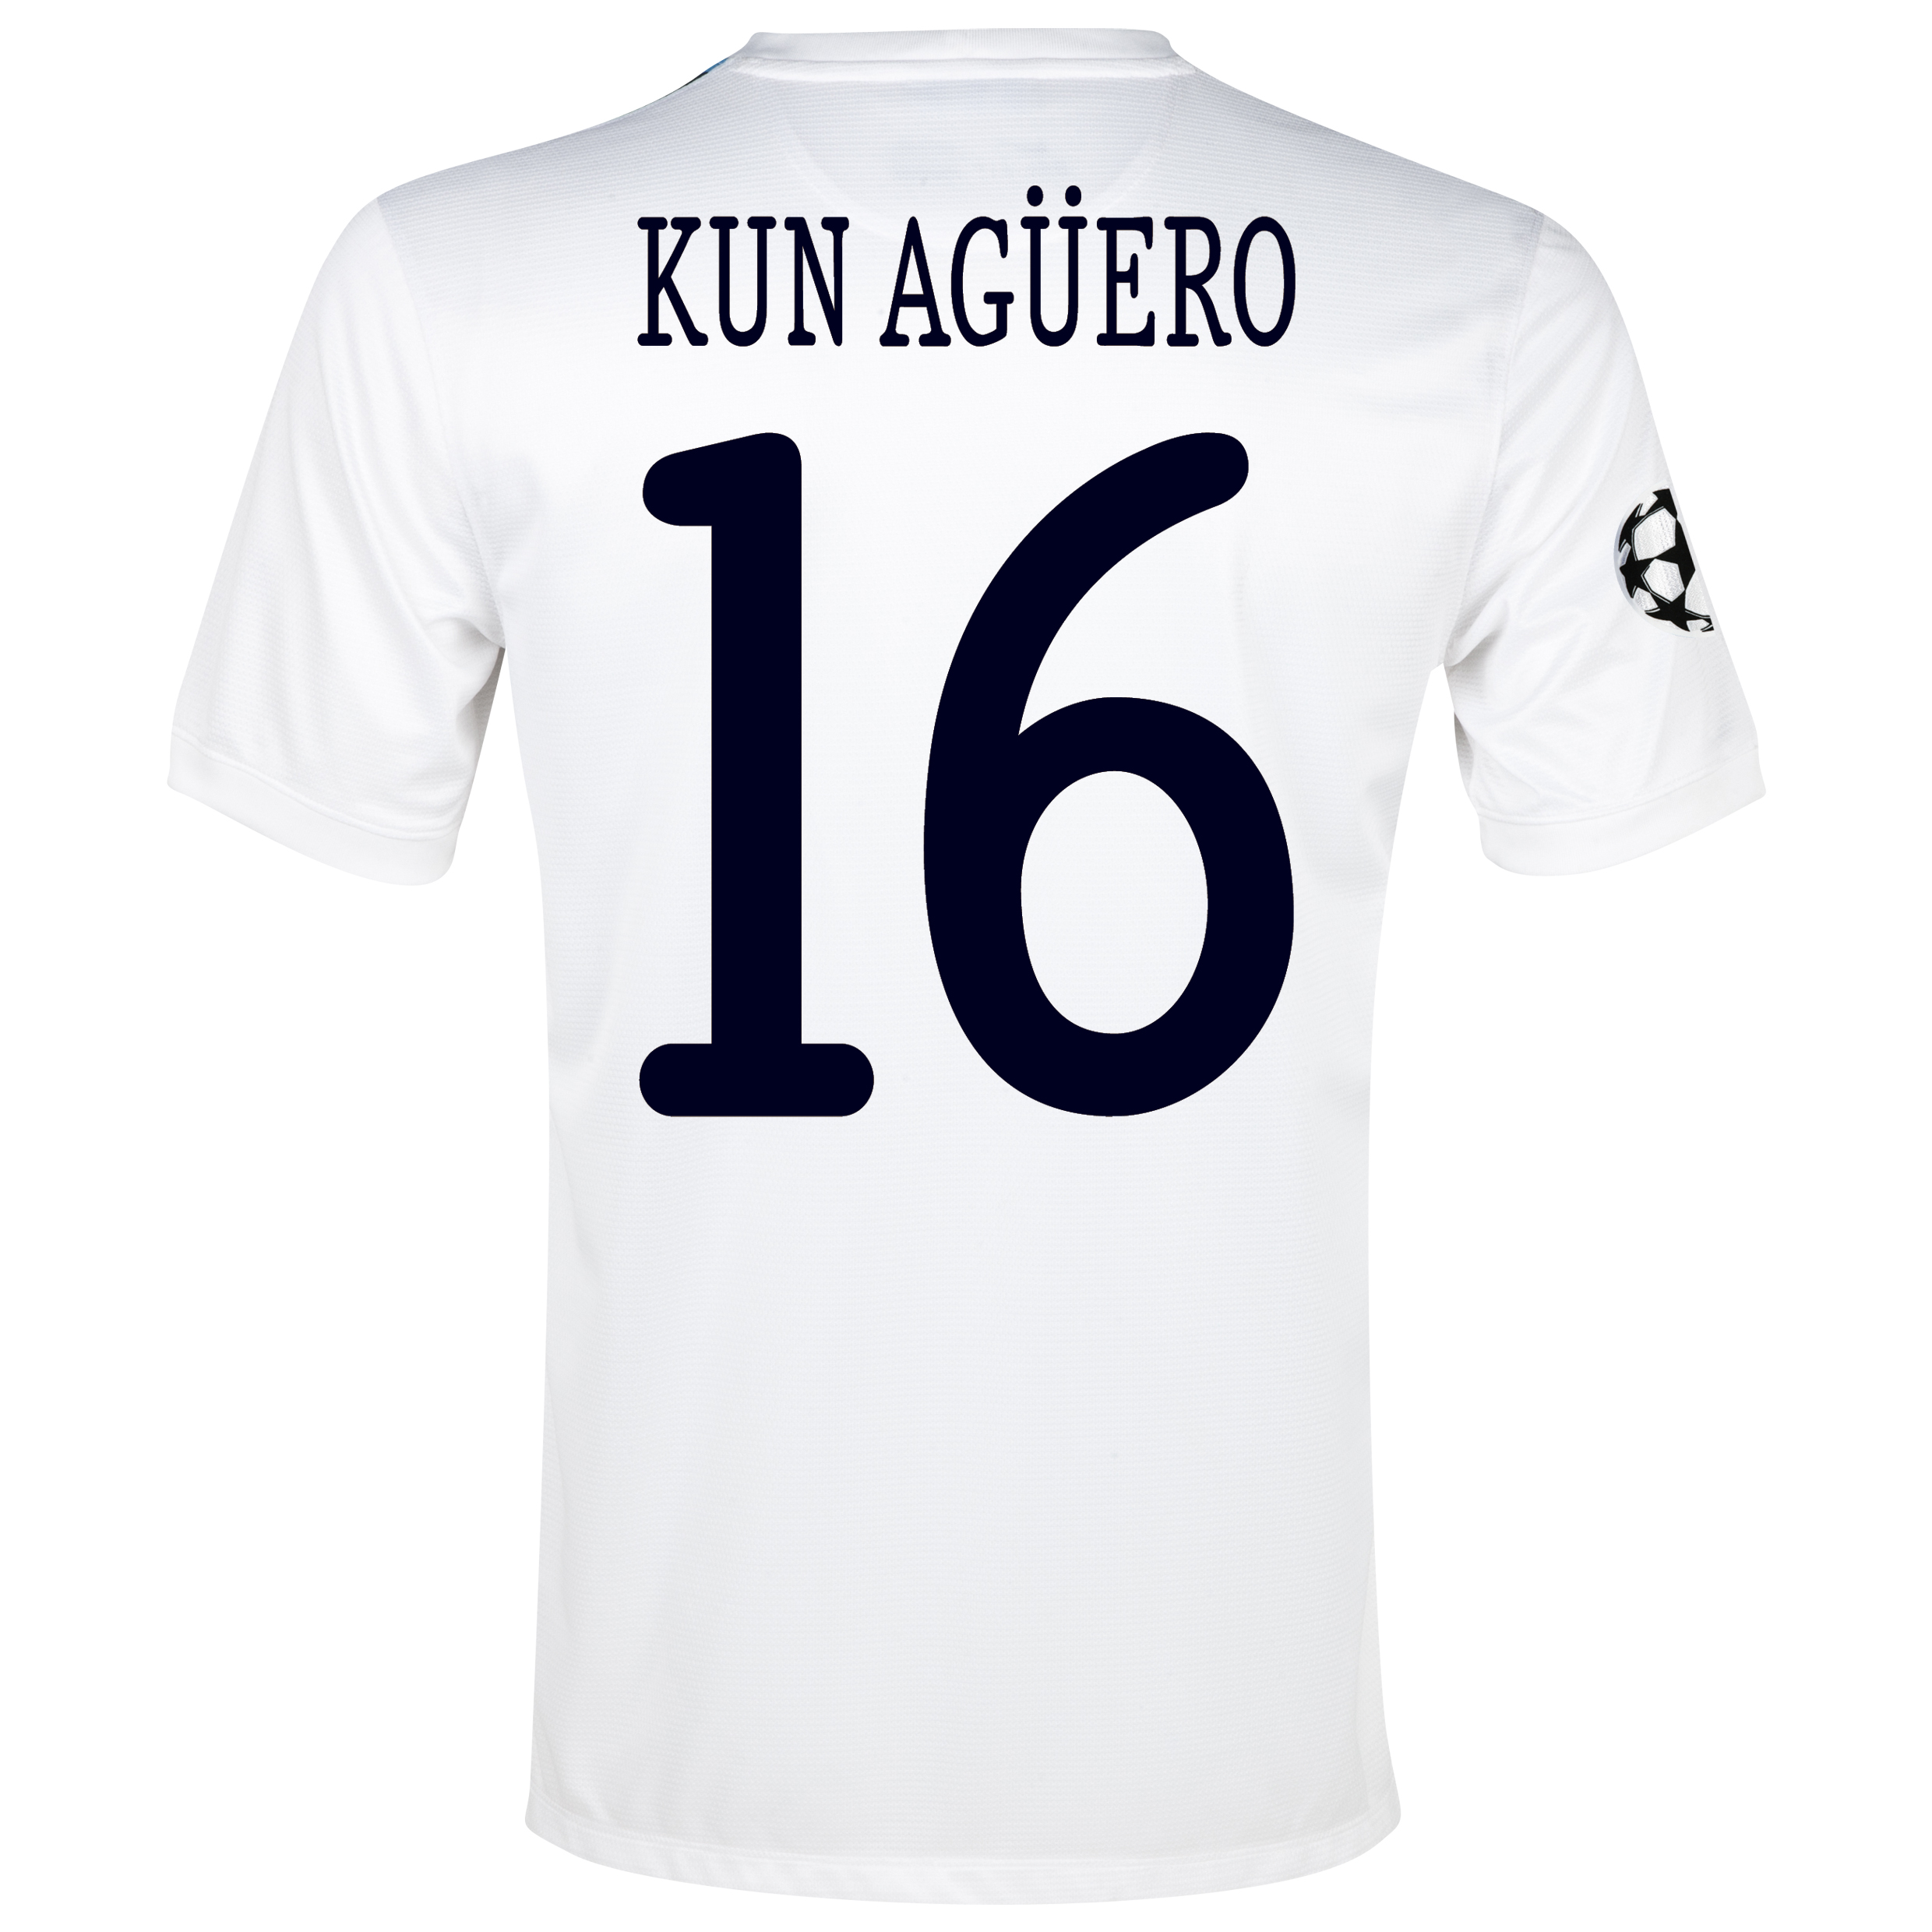 Manchester City UEFA Champions League Cup Away Shirt 2013/14 White with Kun Agüero  16 printing